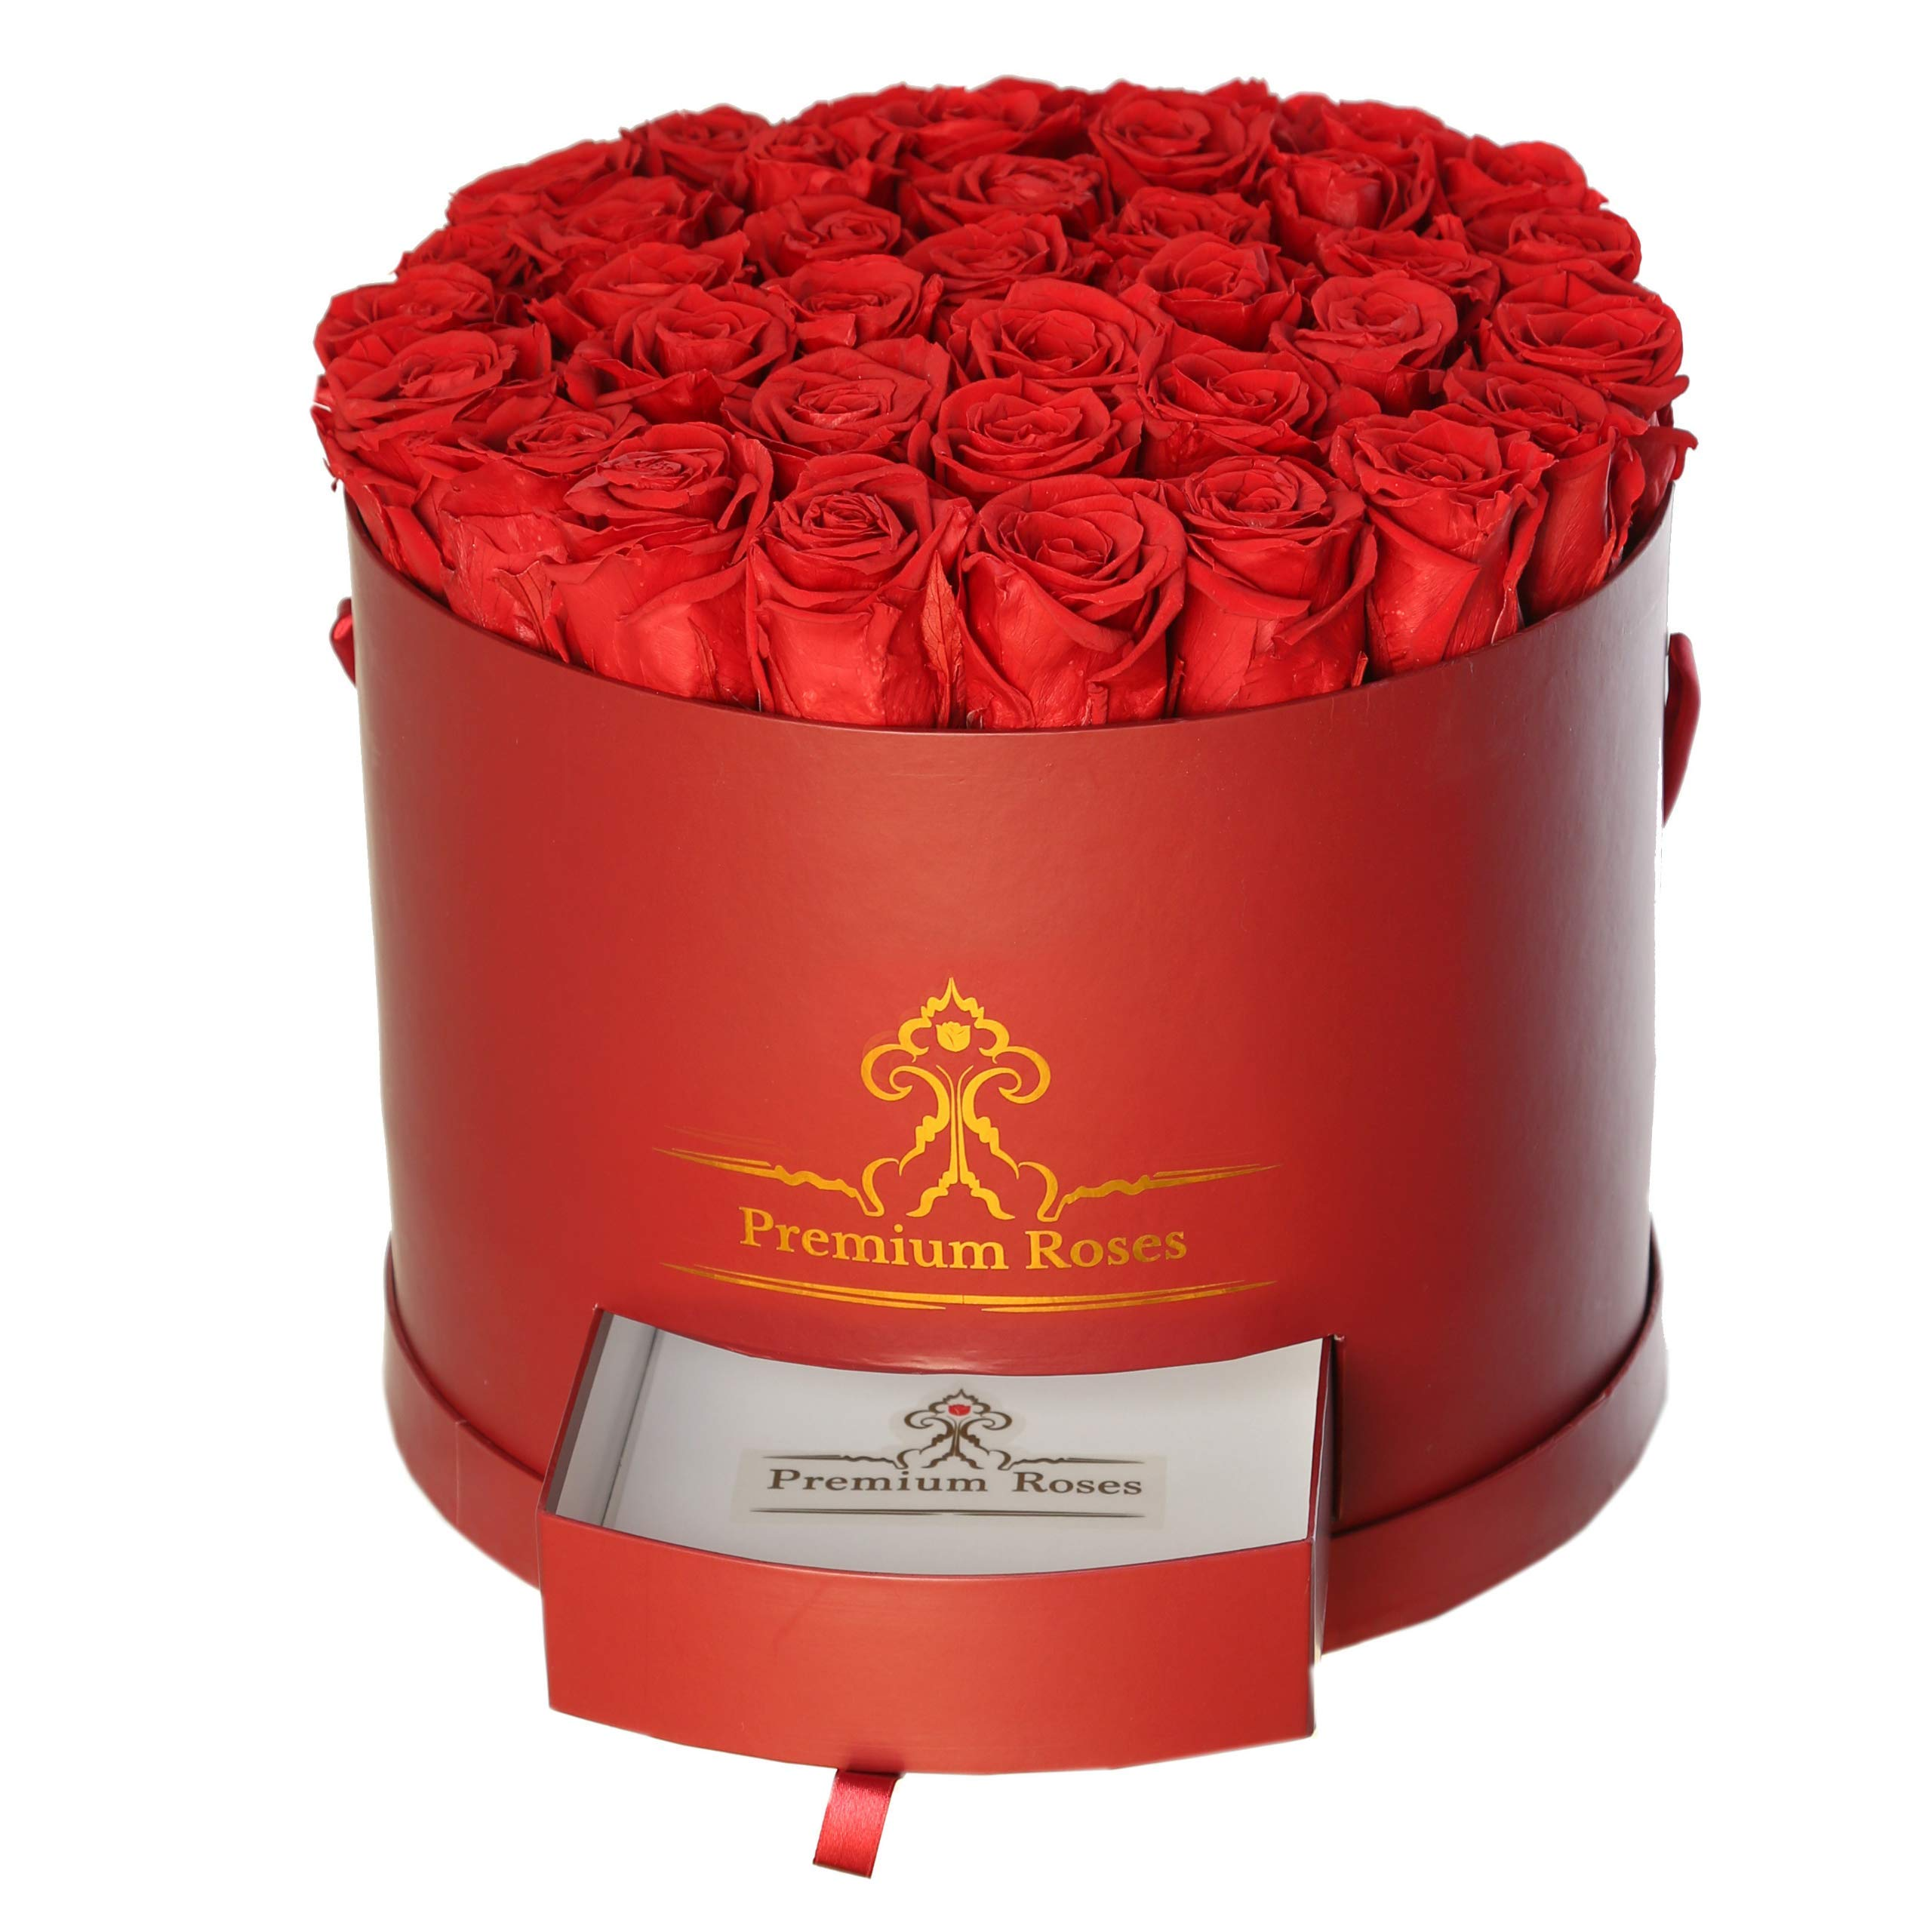 Premium Roses| Real Roses That Last a Year | Fresh Flowers| Roses in a Box (Burgundy Box, Large) by Premium Roses